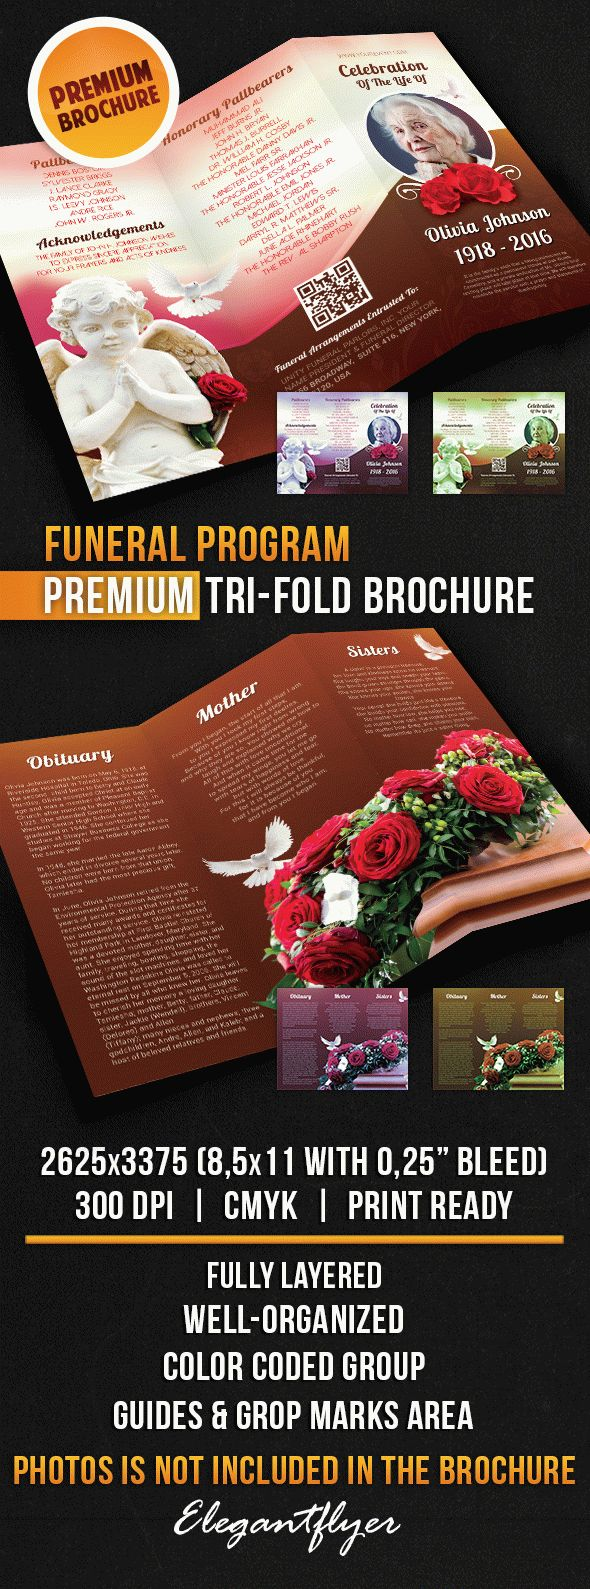 Template funeral program brochure tri fold by elegantflyer for Program brochure templates